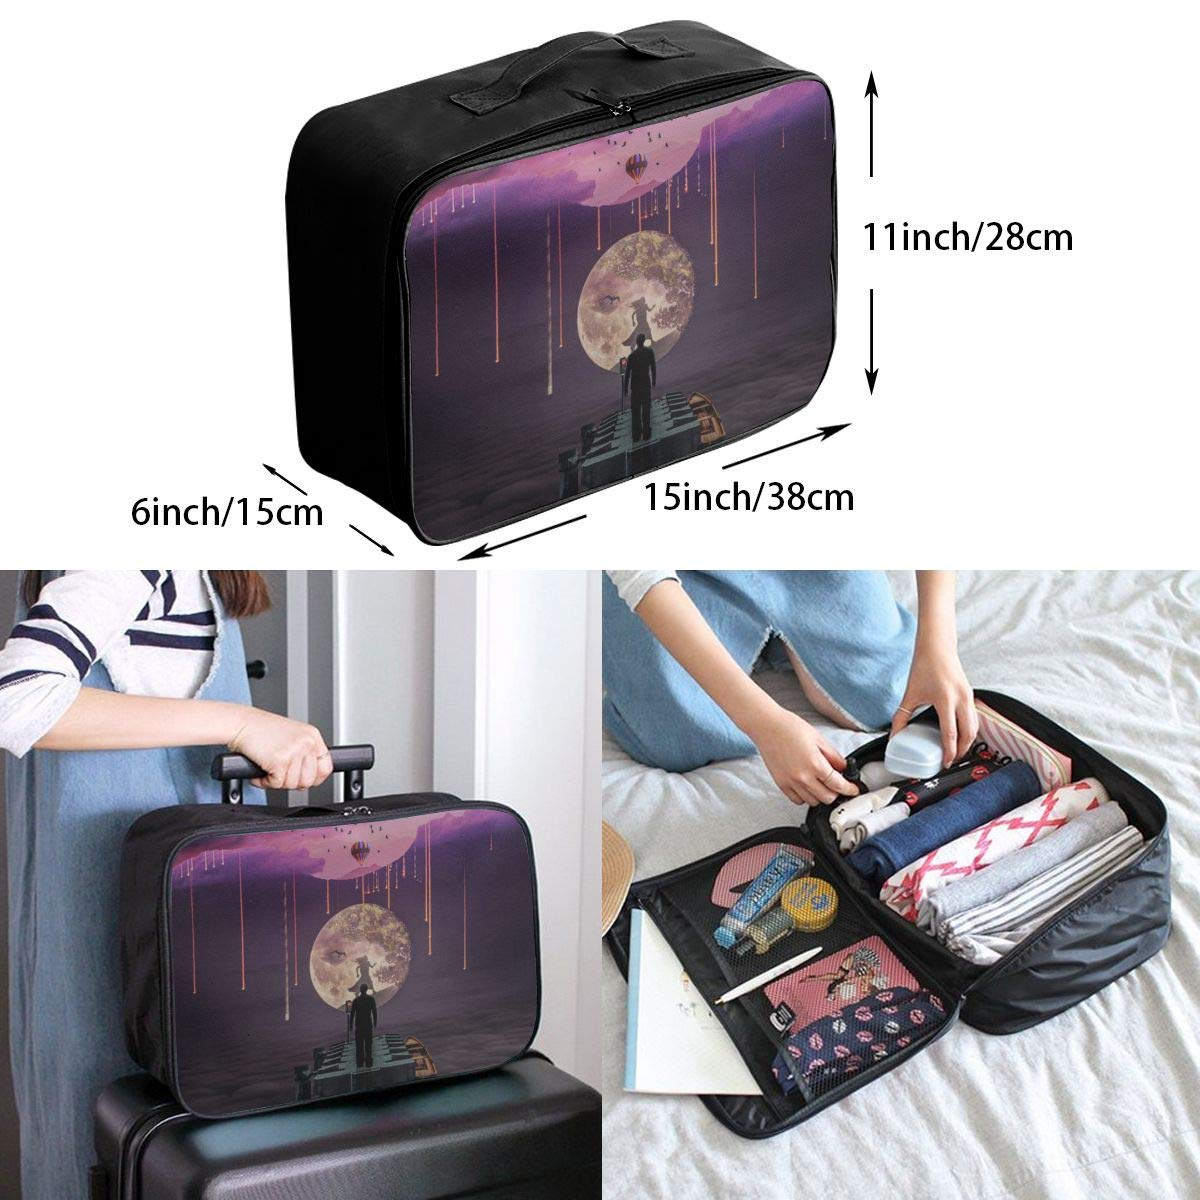 Witch Girl In Moon Travel Lightweight Waterproof Foldable Storage Portable Luggage Duffle Tote Bag Large Capacity In Trolley Handle Bags 6x11x15 Inch